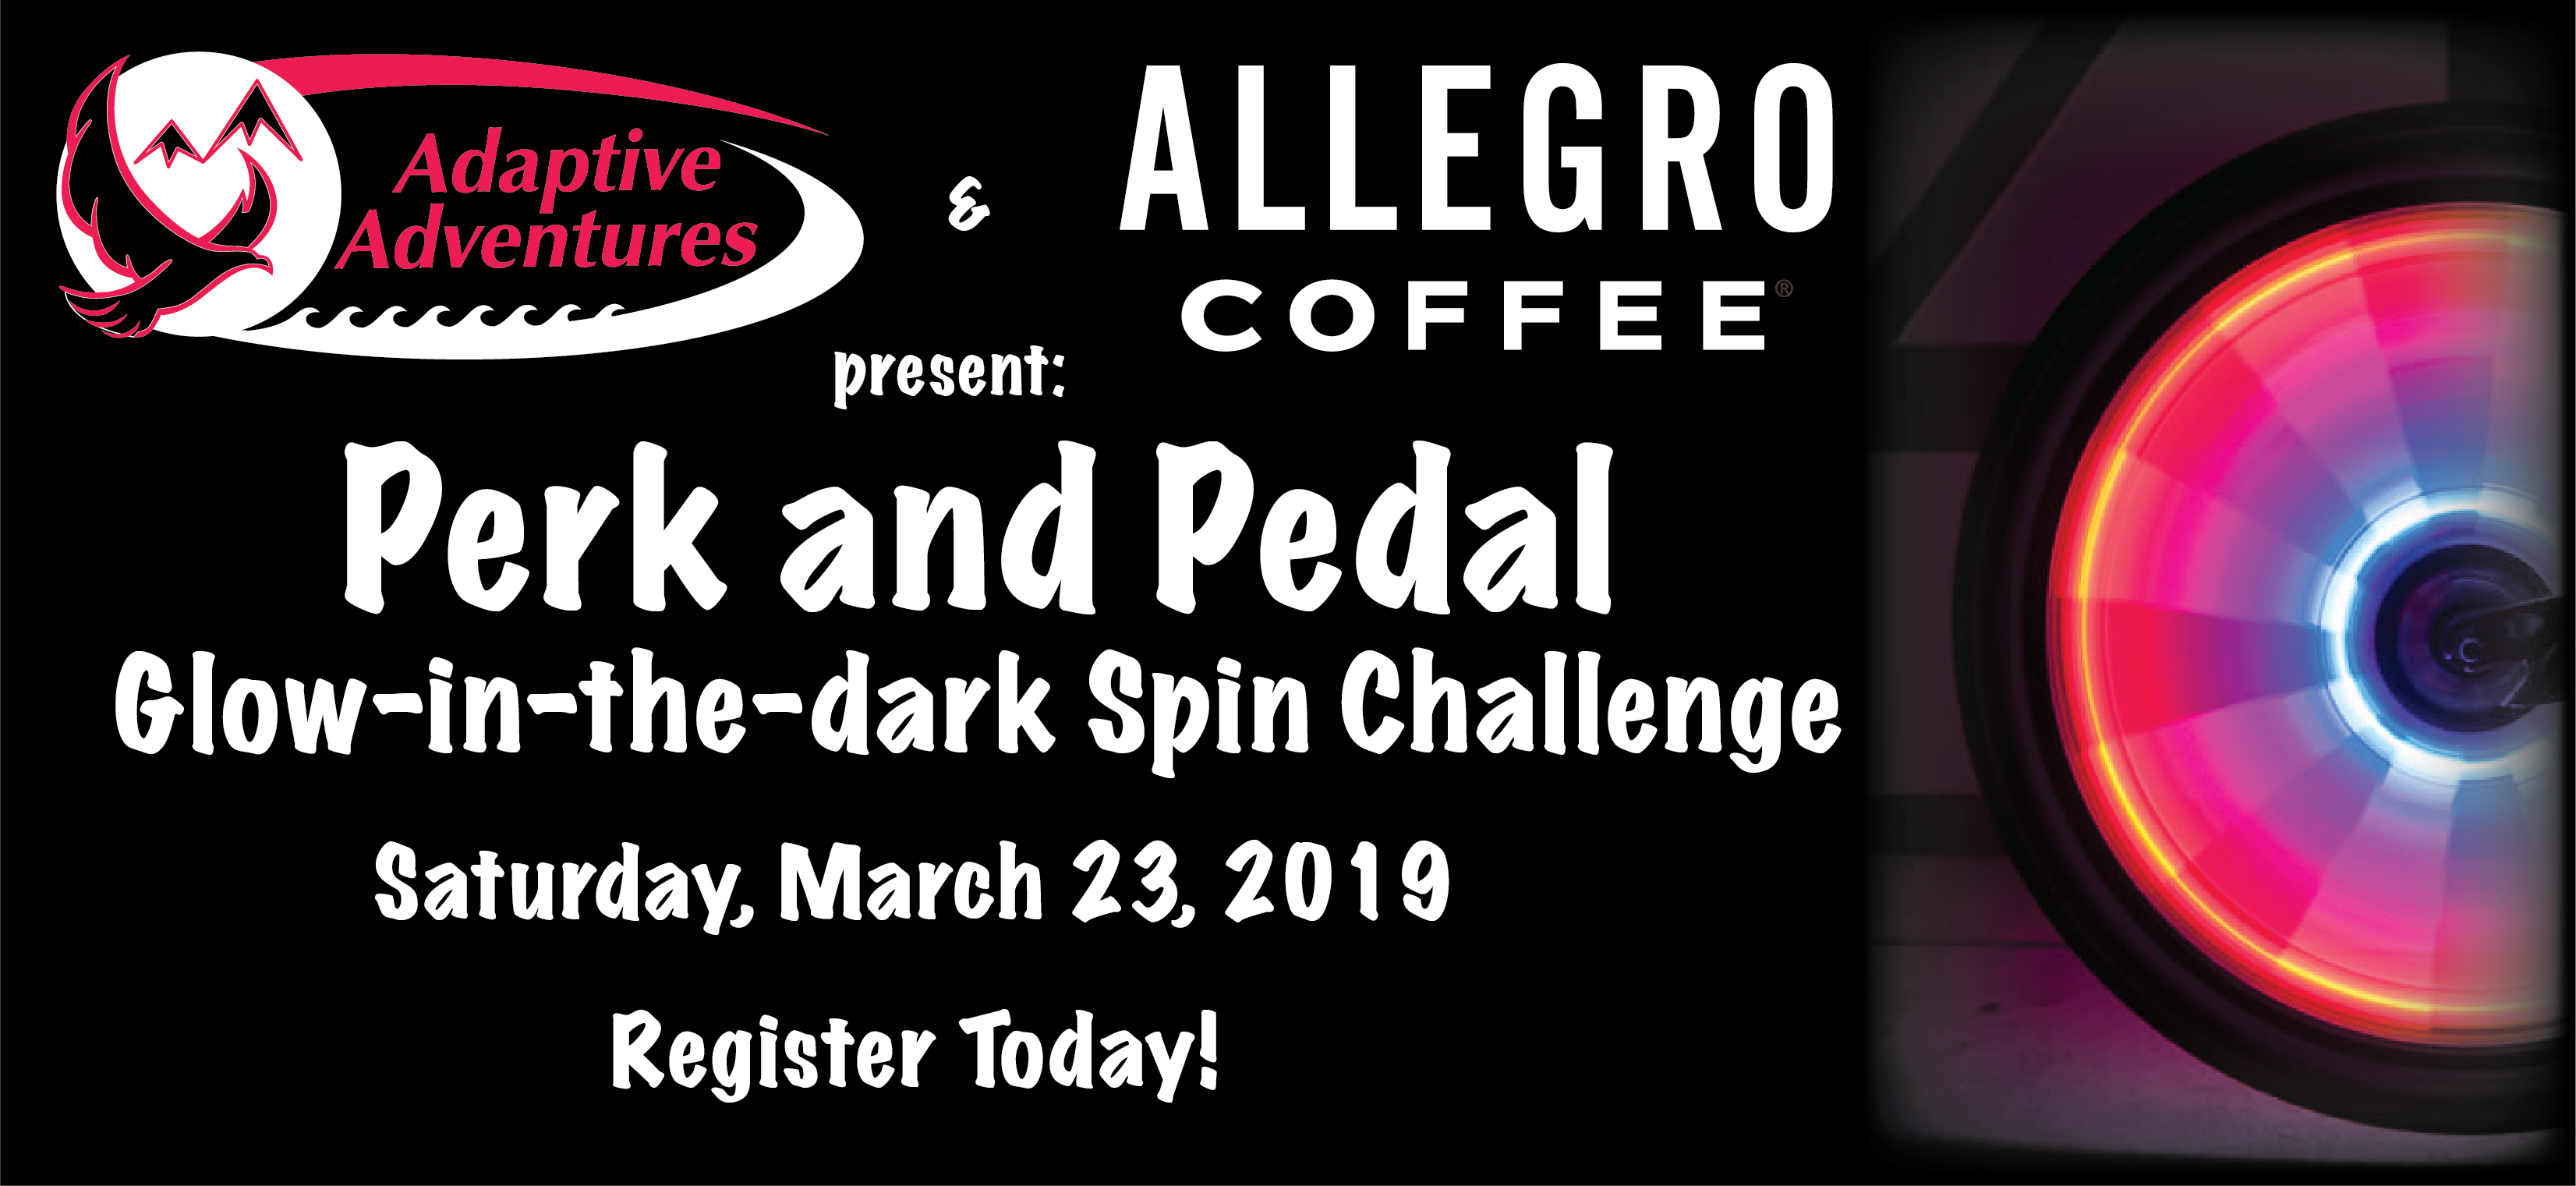 Perk and Pedal Spin Challenge 2019